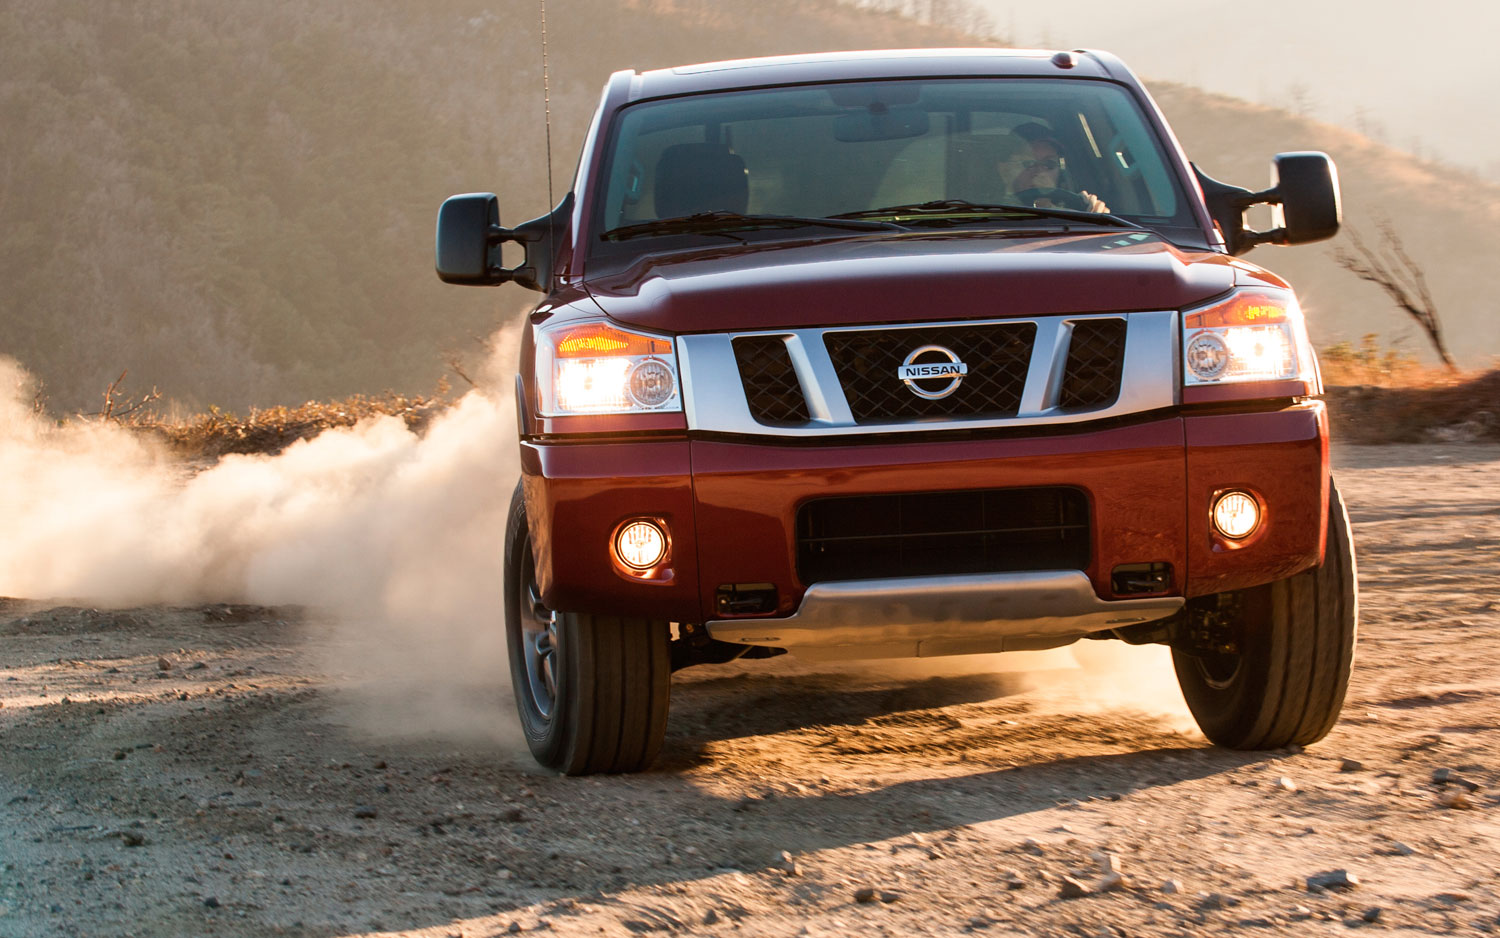 2013 Nissan Titan Prices Rise Starts At 29815 Tops Out At